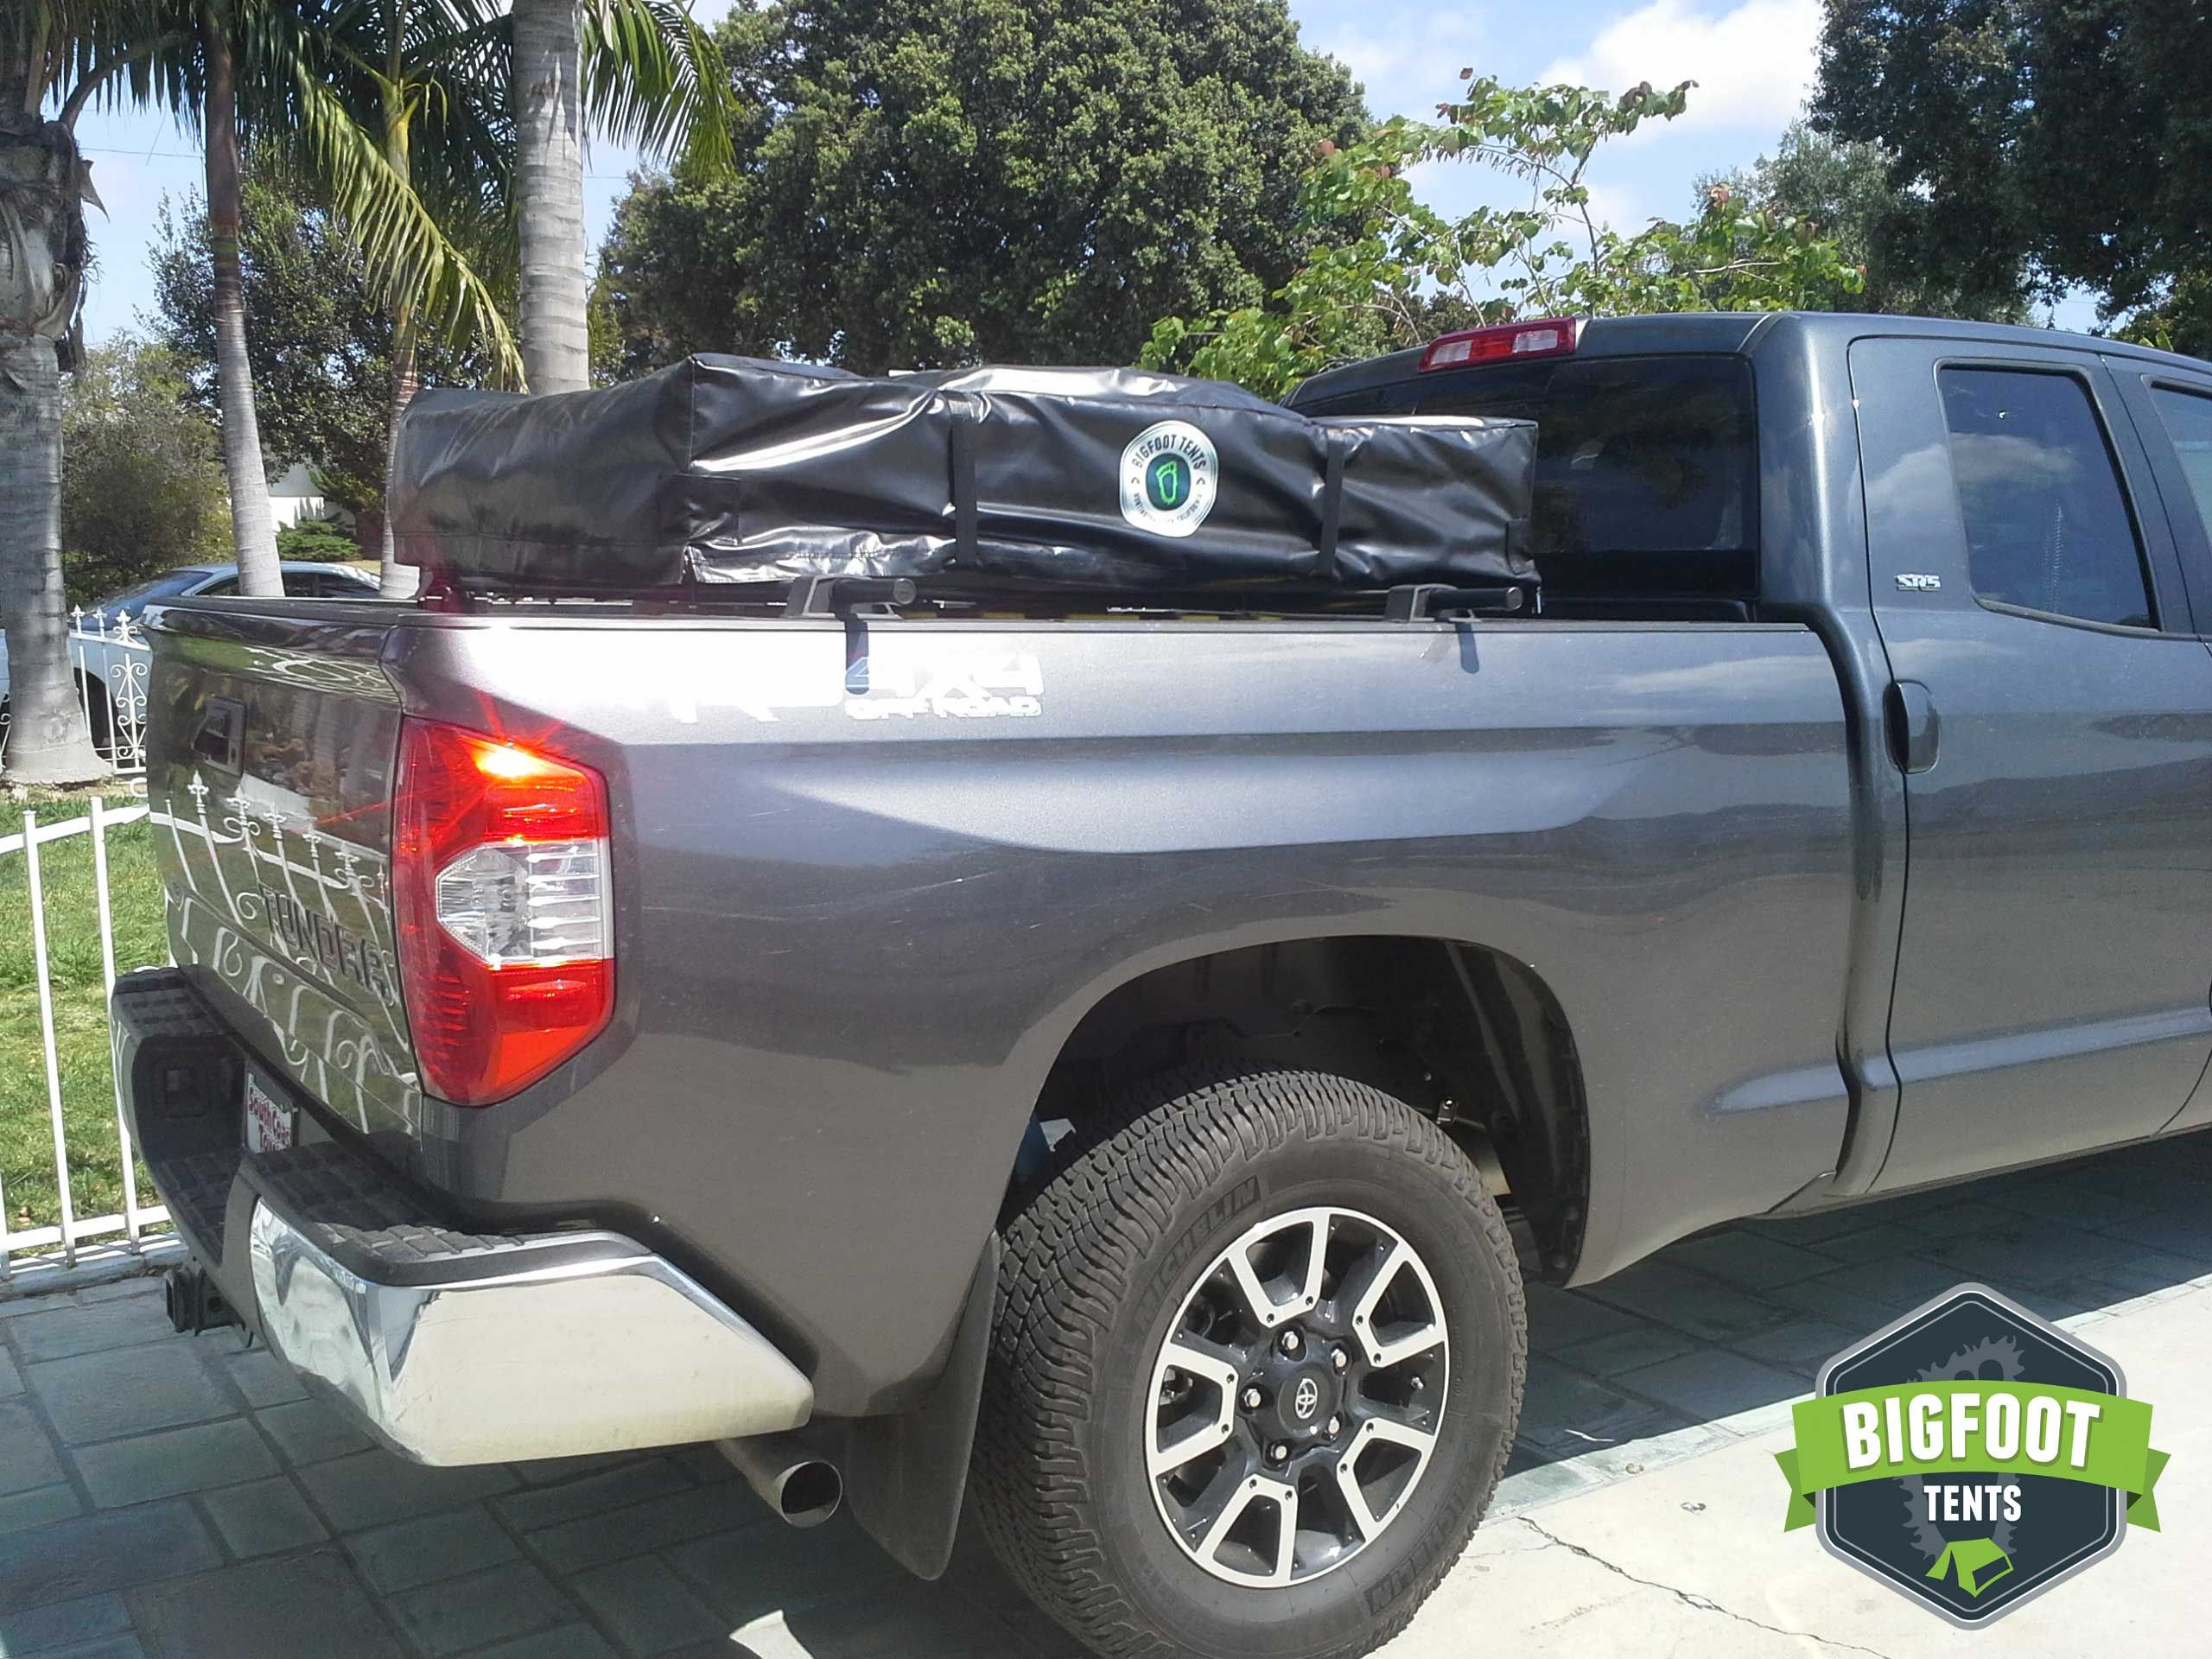 2015 Toyota Tundra with a Bigfoot Roof Top Tent mounted on a Yakima Bed Rock - & 2015 Toyota Tundra with a Bigfoot Roof Top Tent mounted on a ...